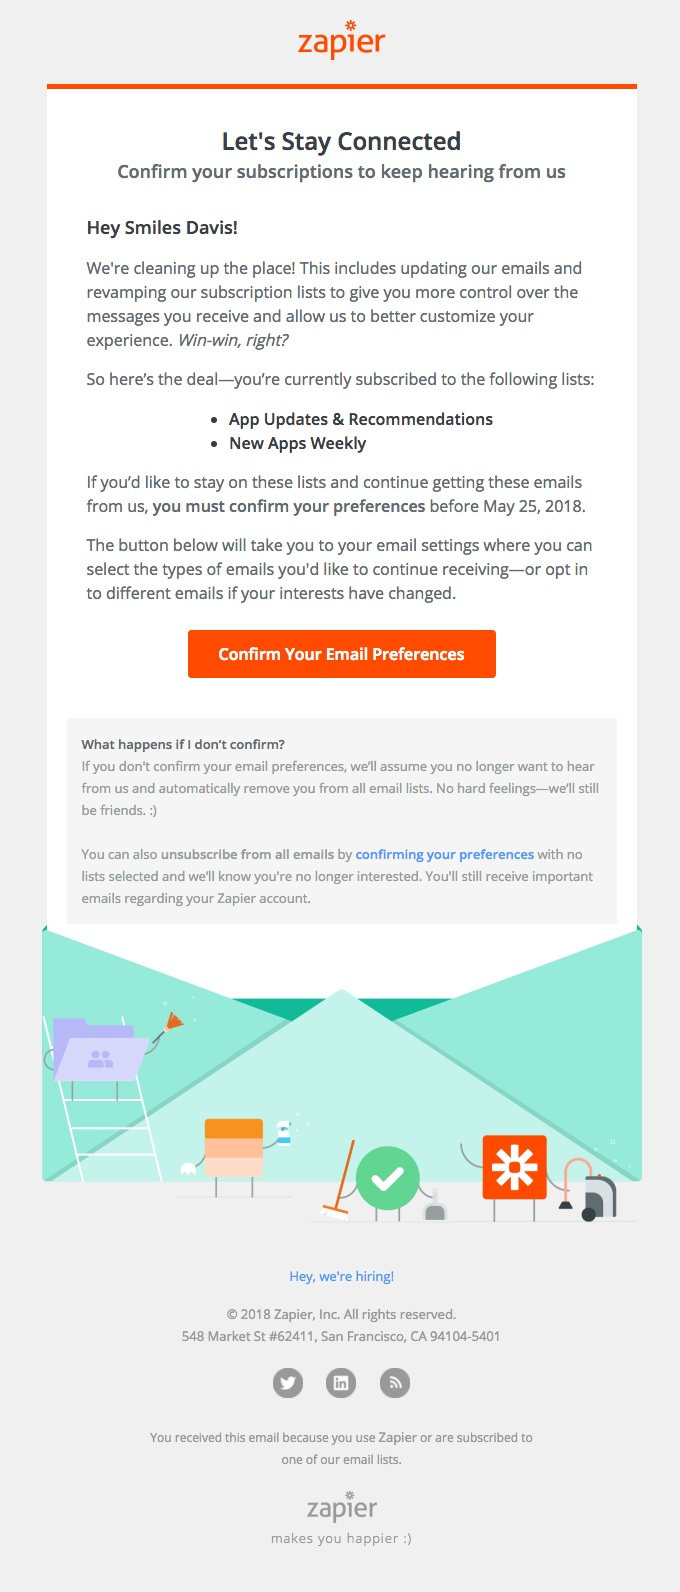 Zapier promotes transparency by telling subscribers what exactly they've subscribed to.